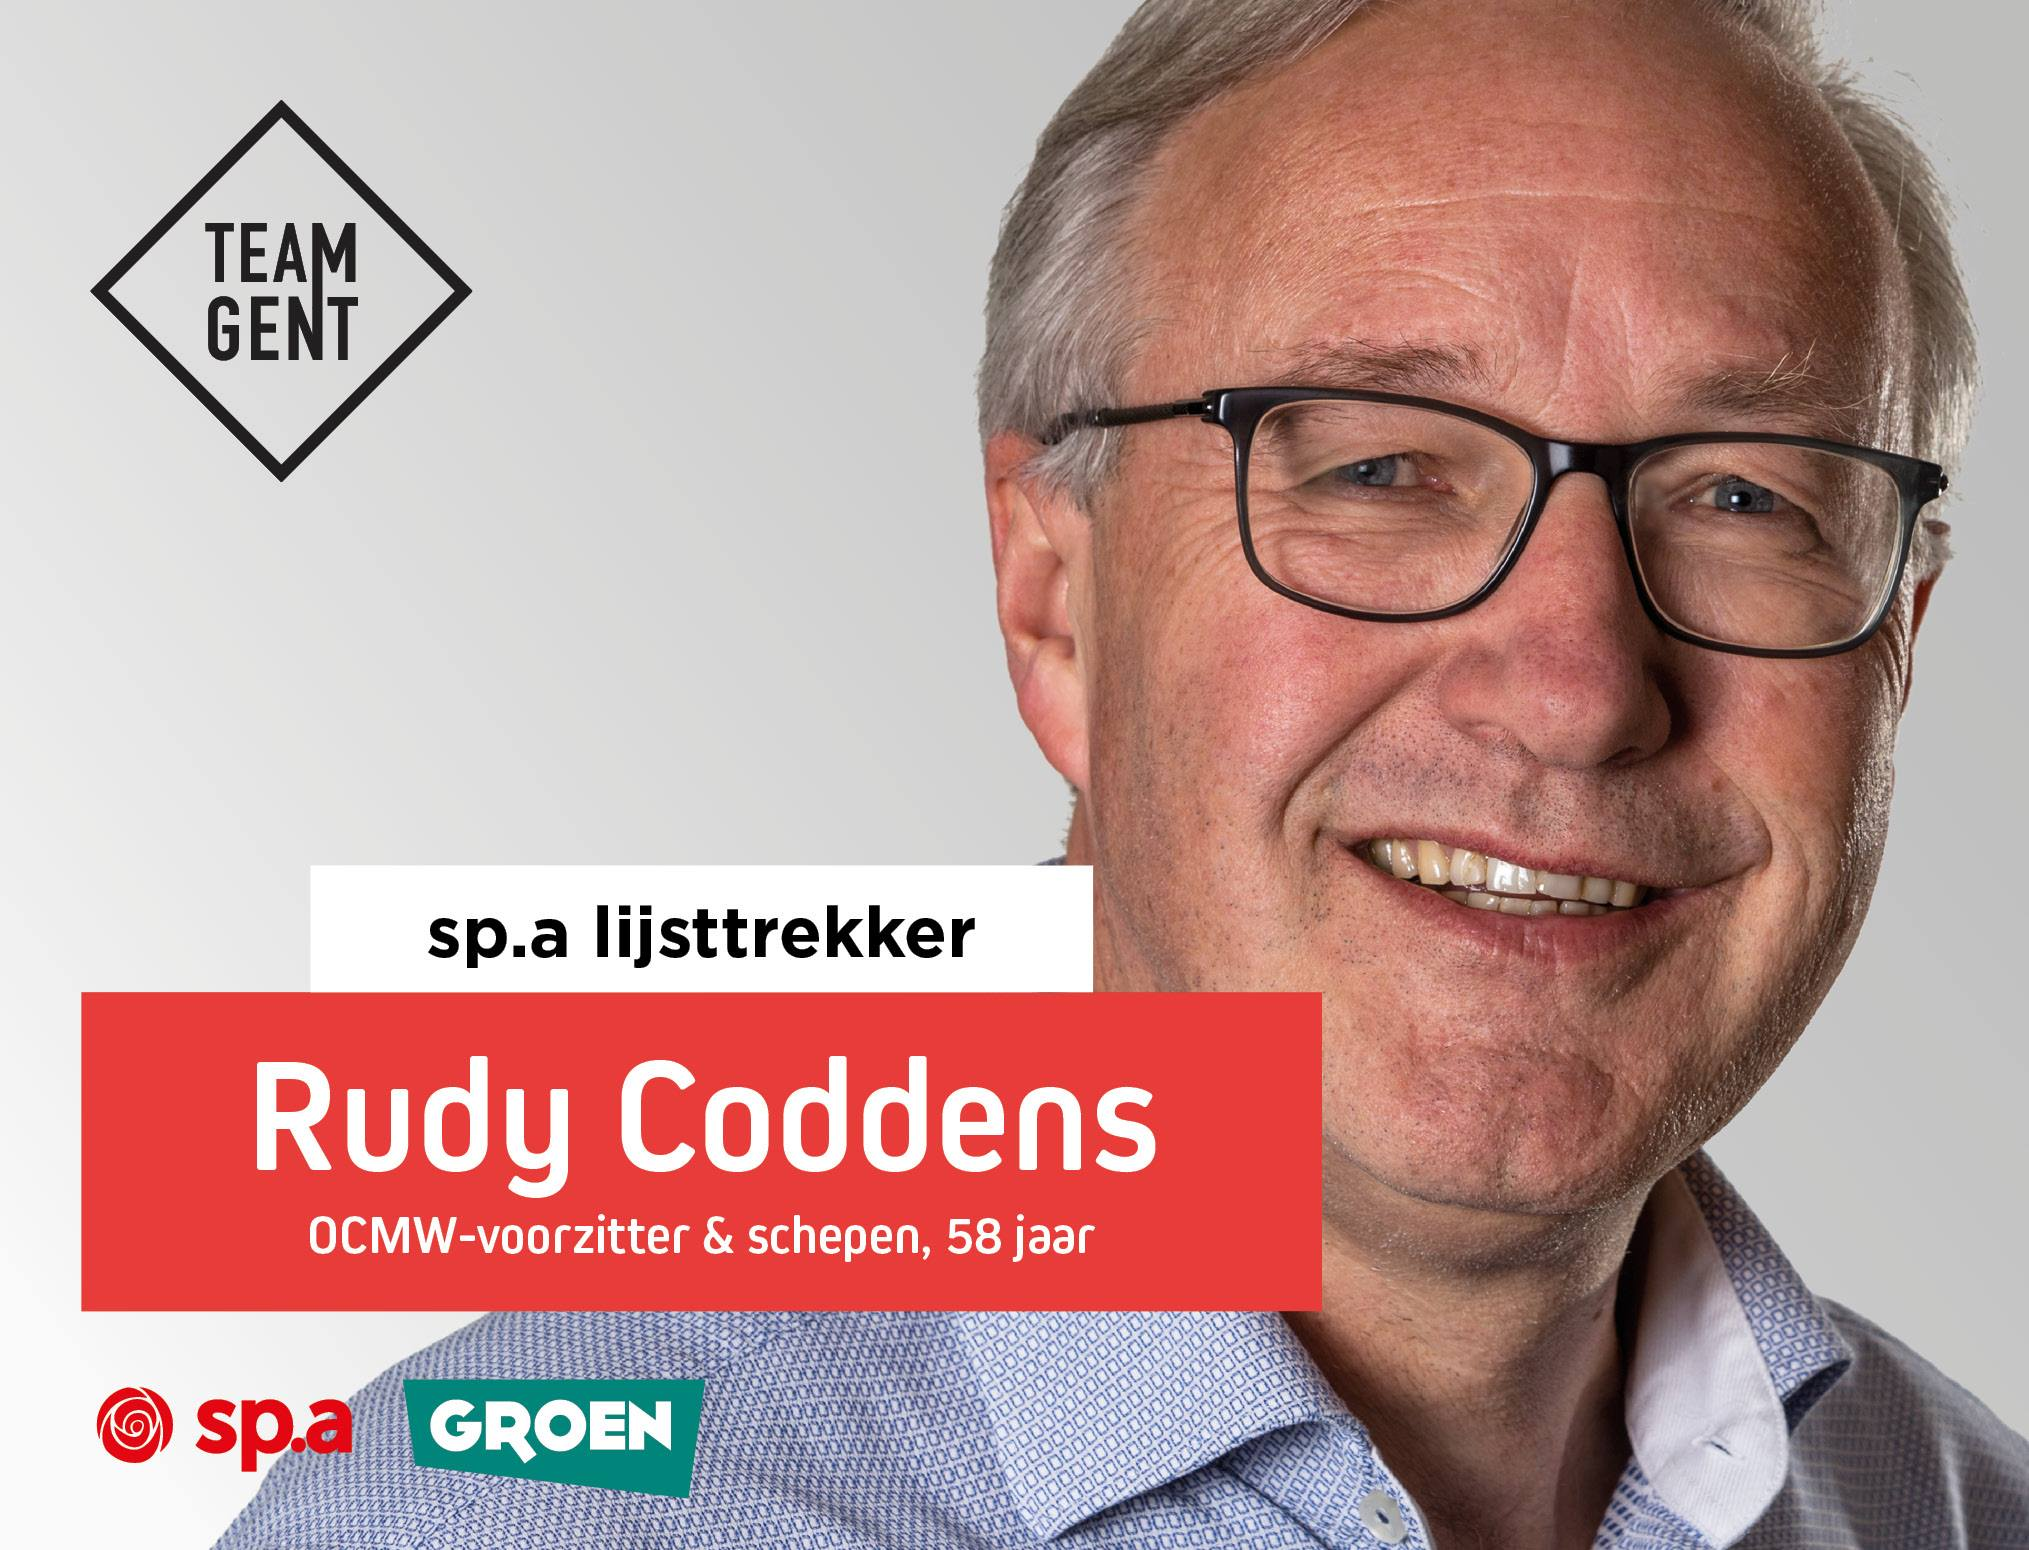 Wie is Rudy Coddens?